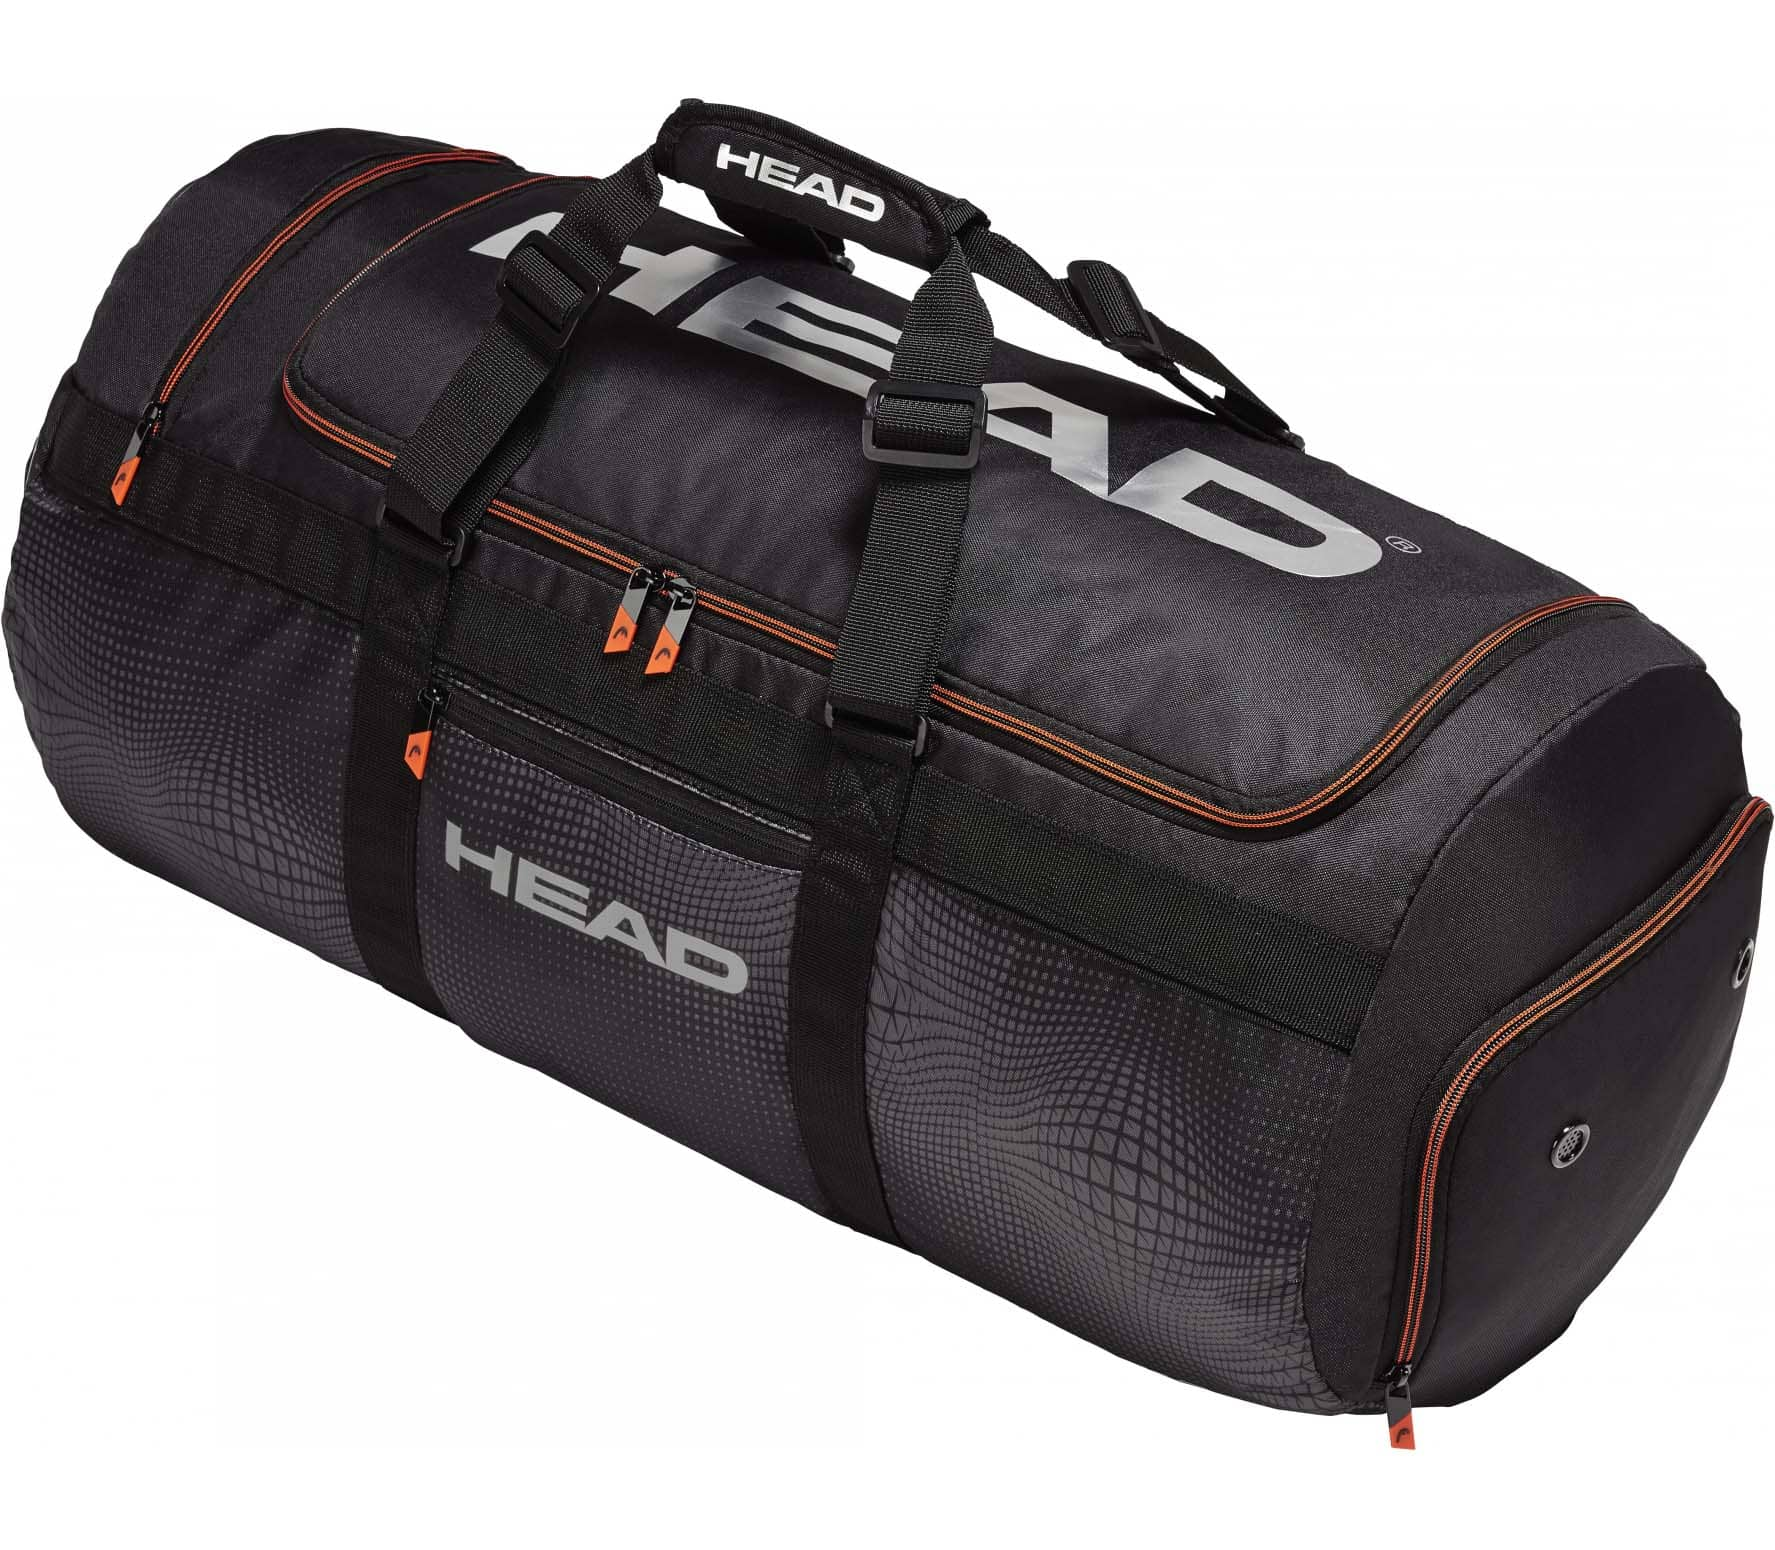 Head - Tour Team Sport Bag tennis bag (black)